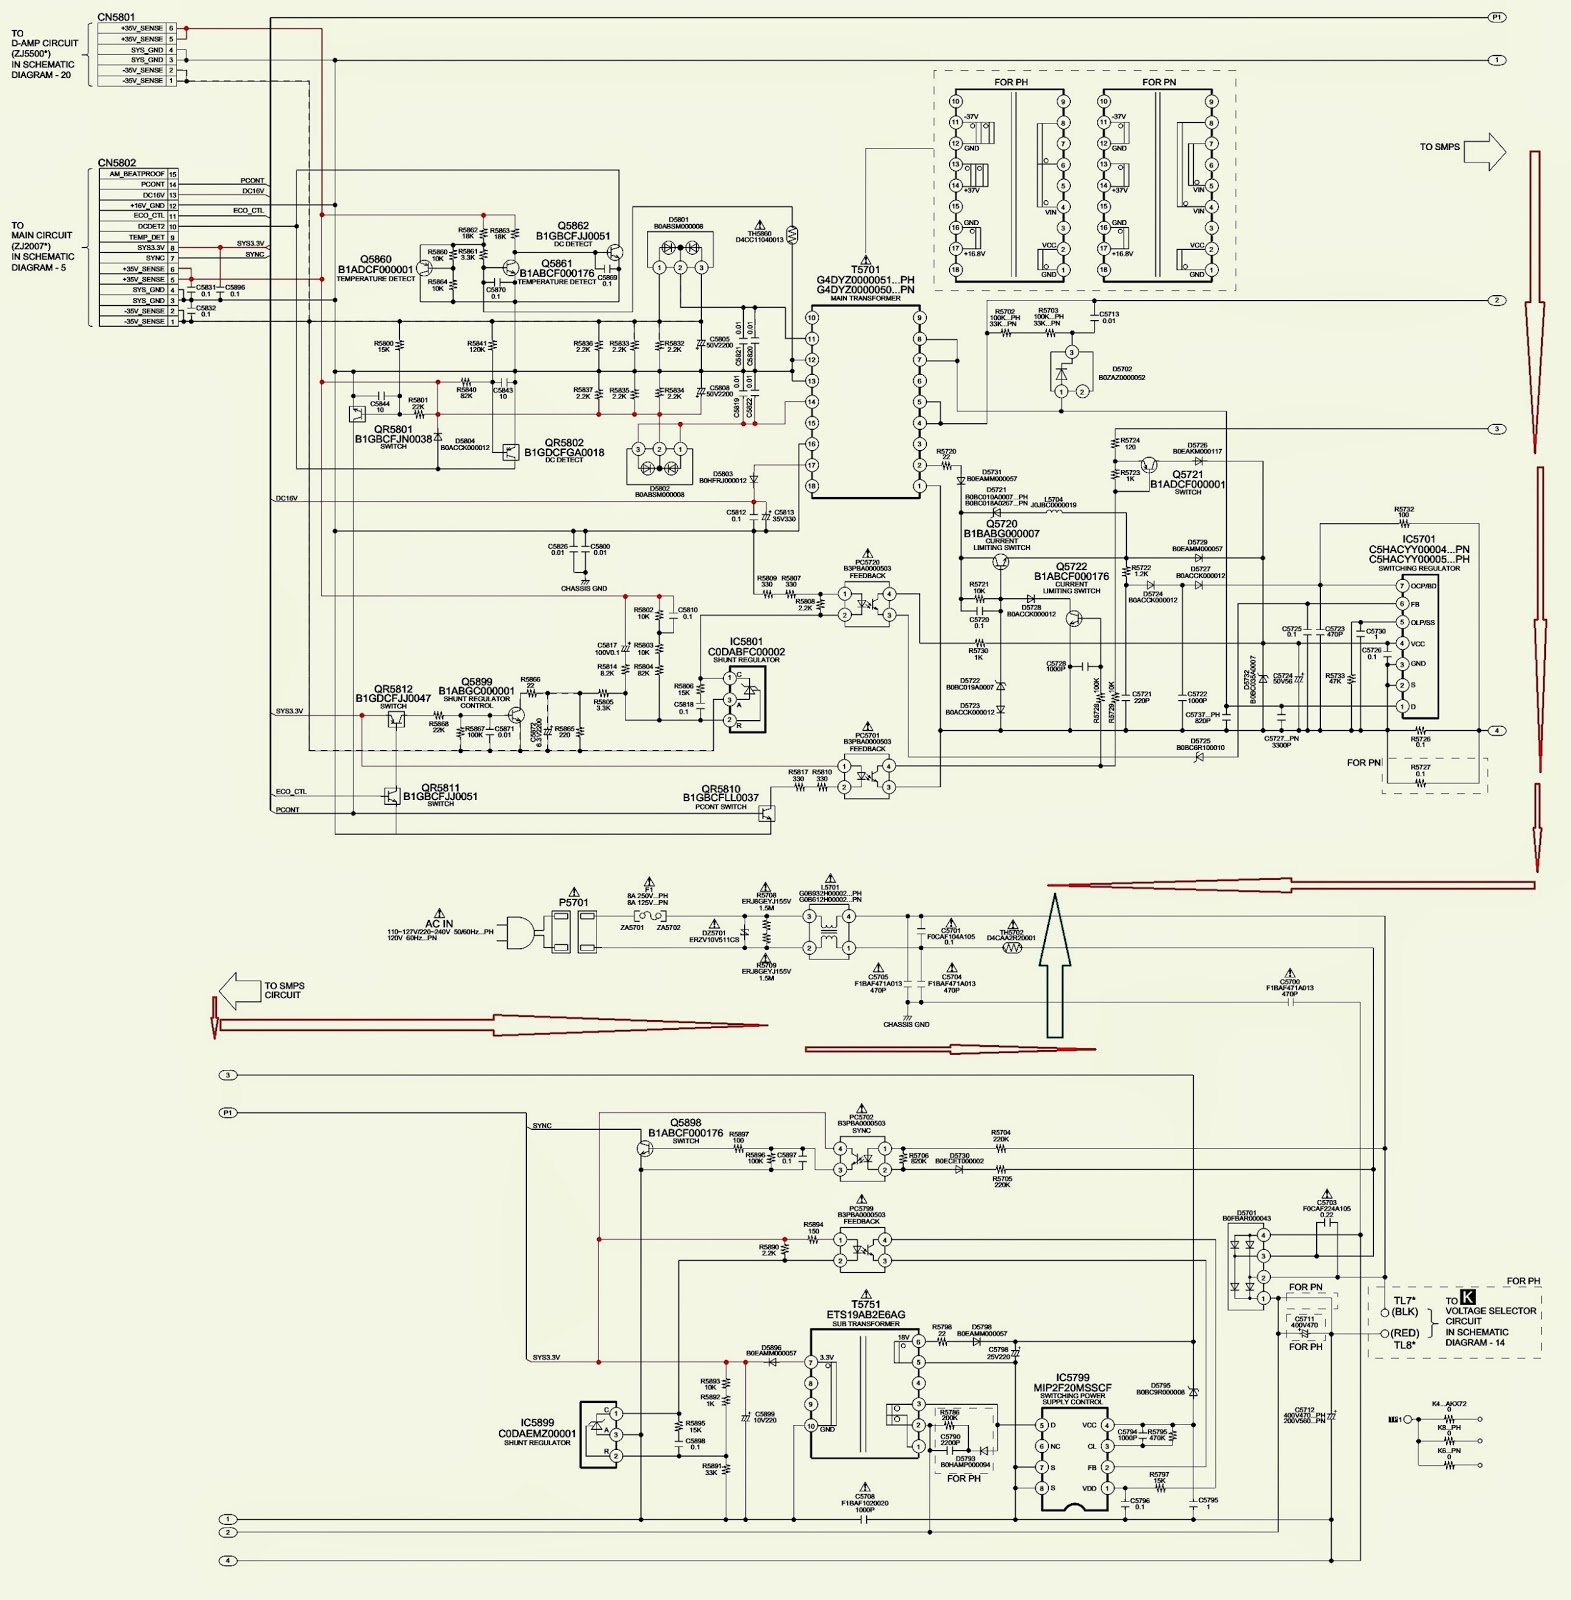 Panasonic Sc Akx72lb K Cd Stereo System Smps And Power Amplifier Circuit Diagram Of